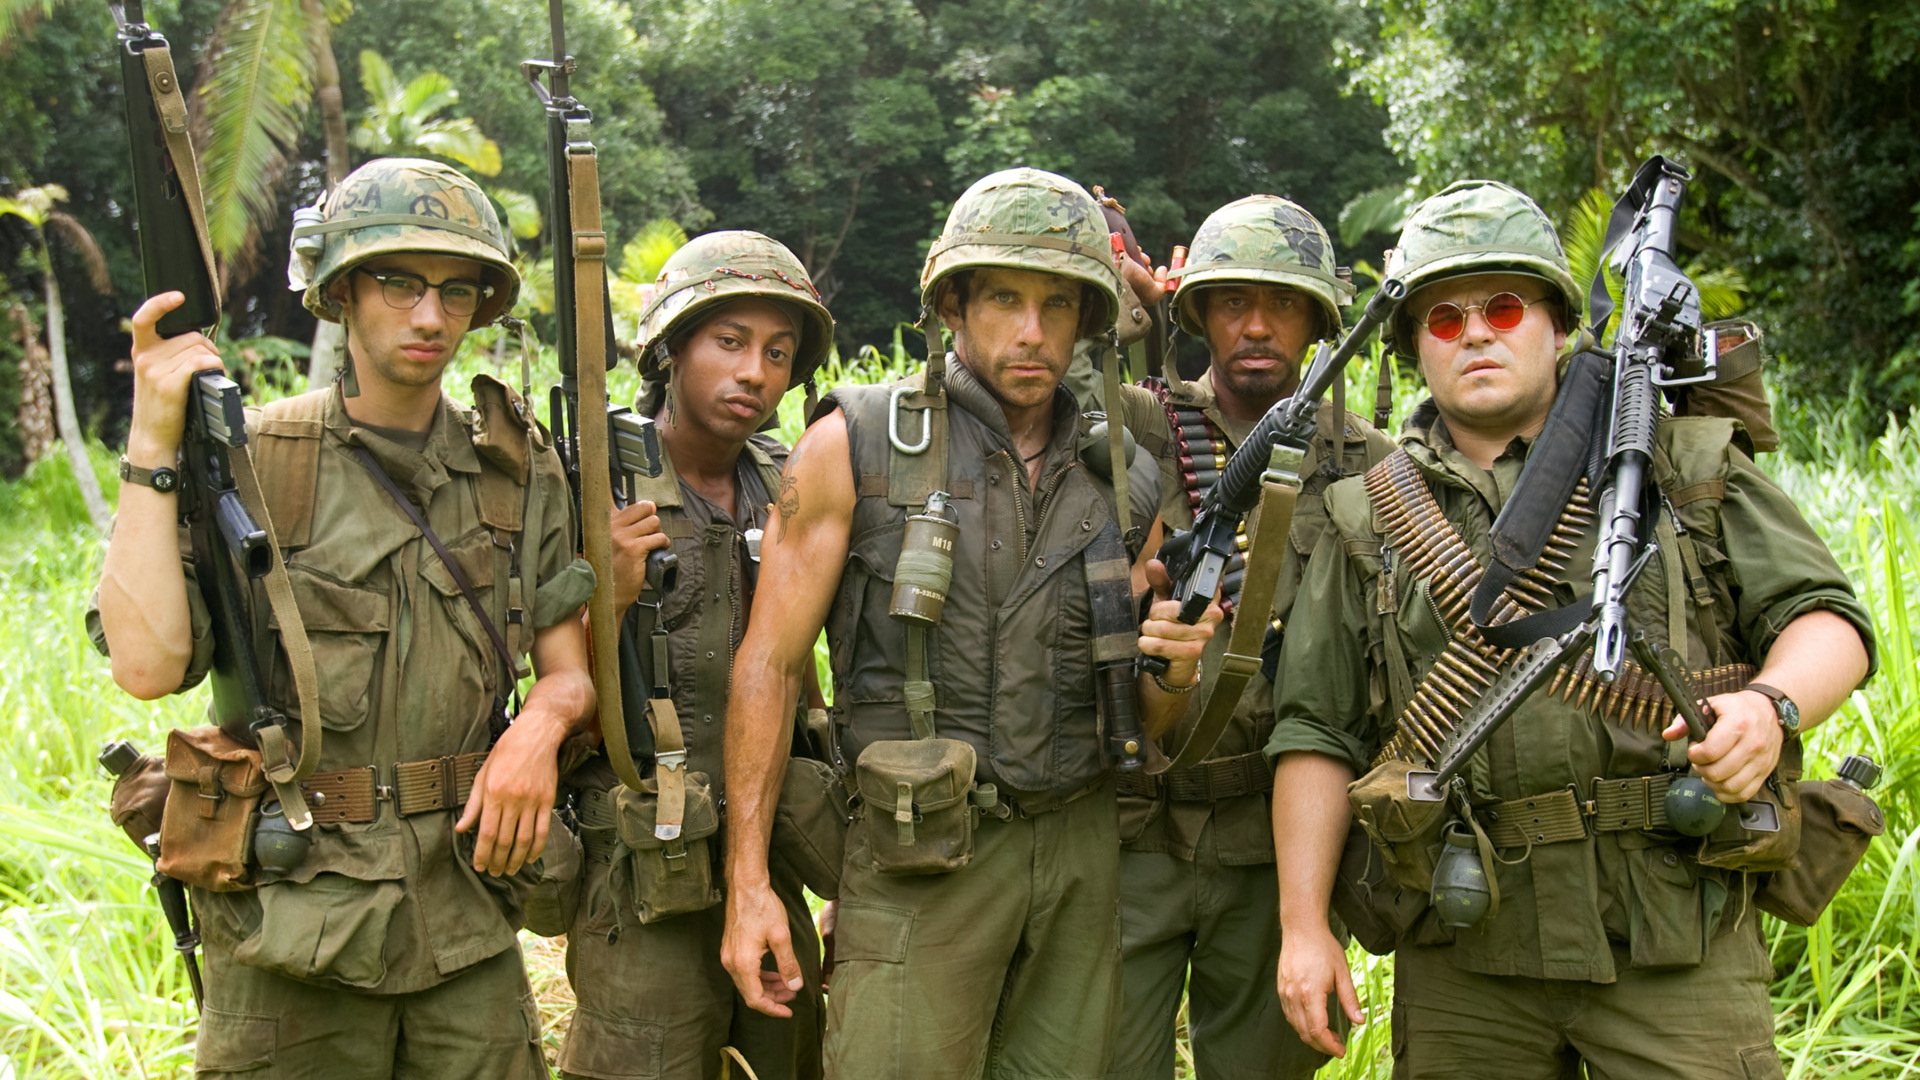 Tropic Thunder HD Wallpaper | Sfondo | 1920x1080 | ID:827639 - Wallpaper  Abyss